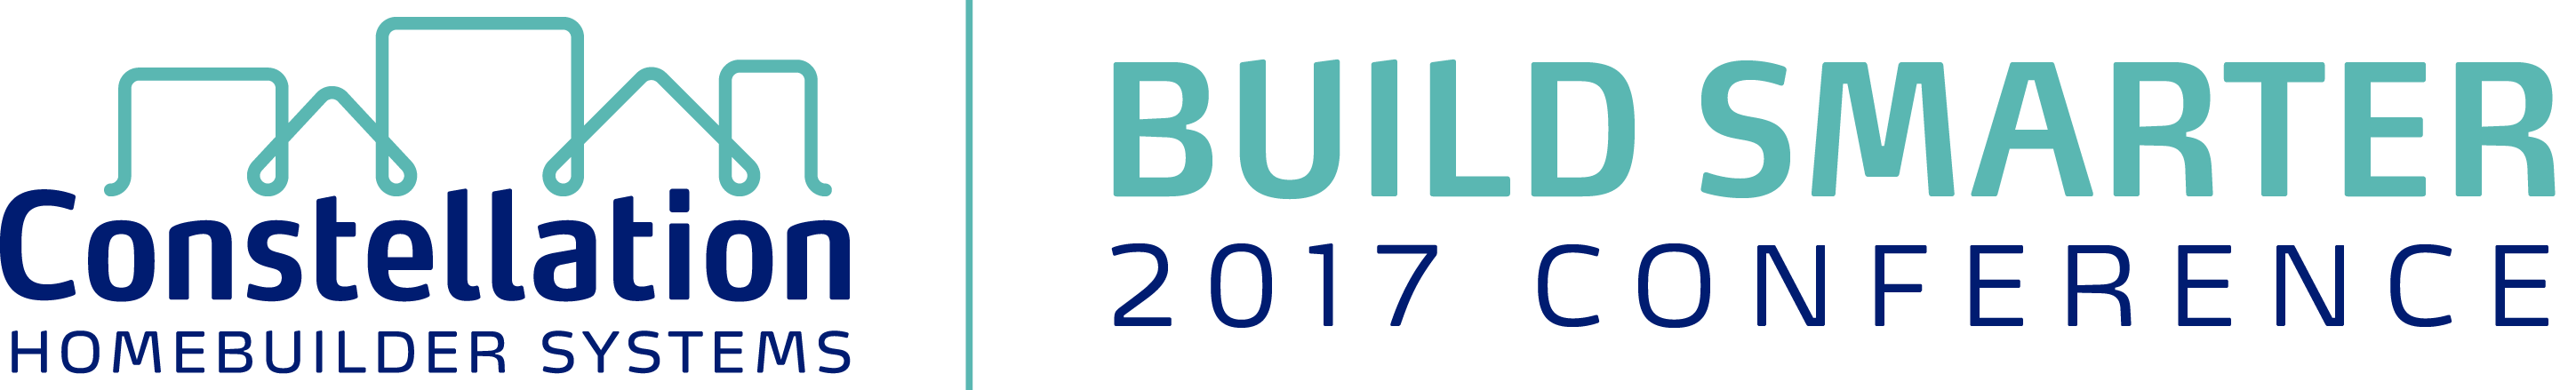 Conference Logo 2017